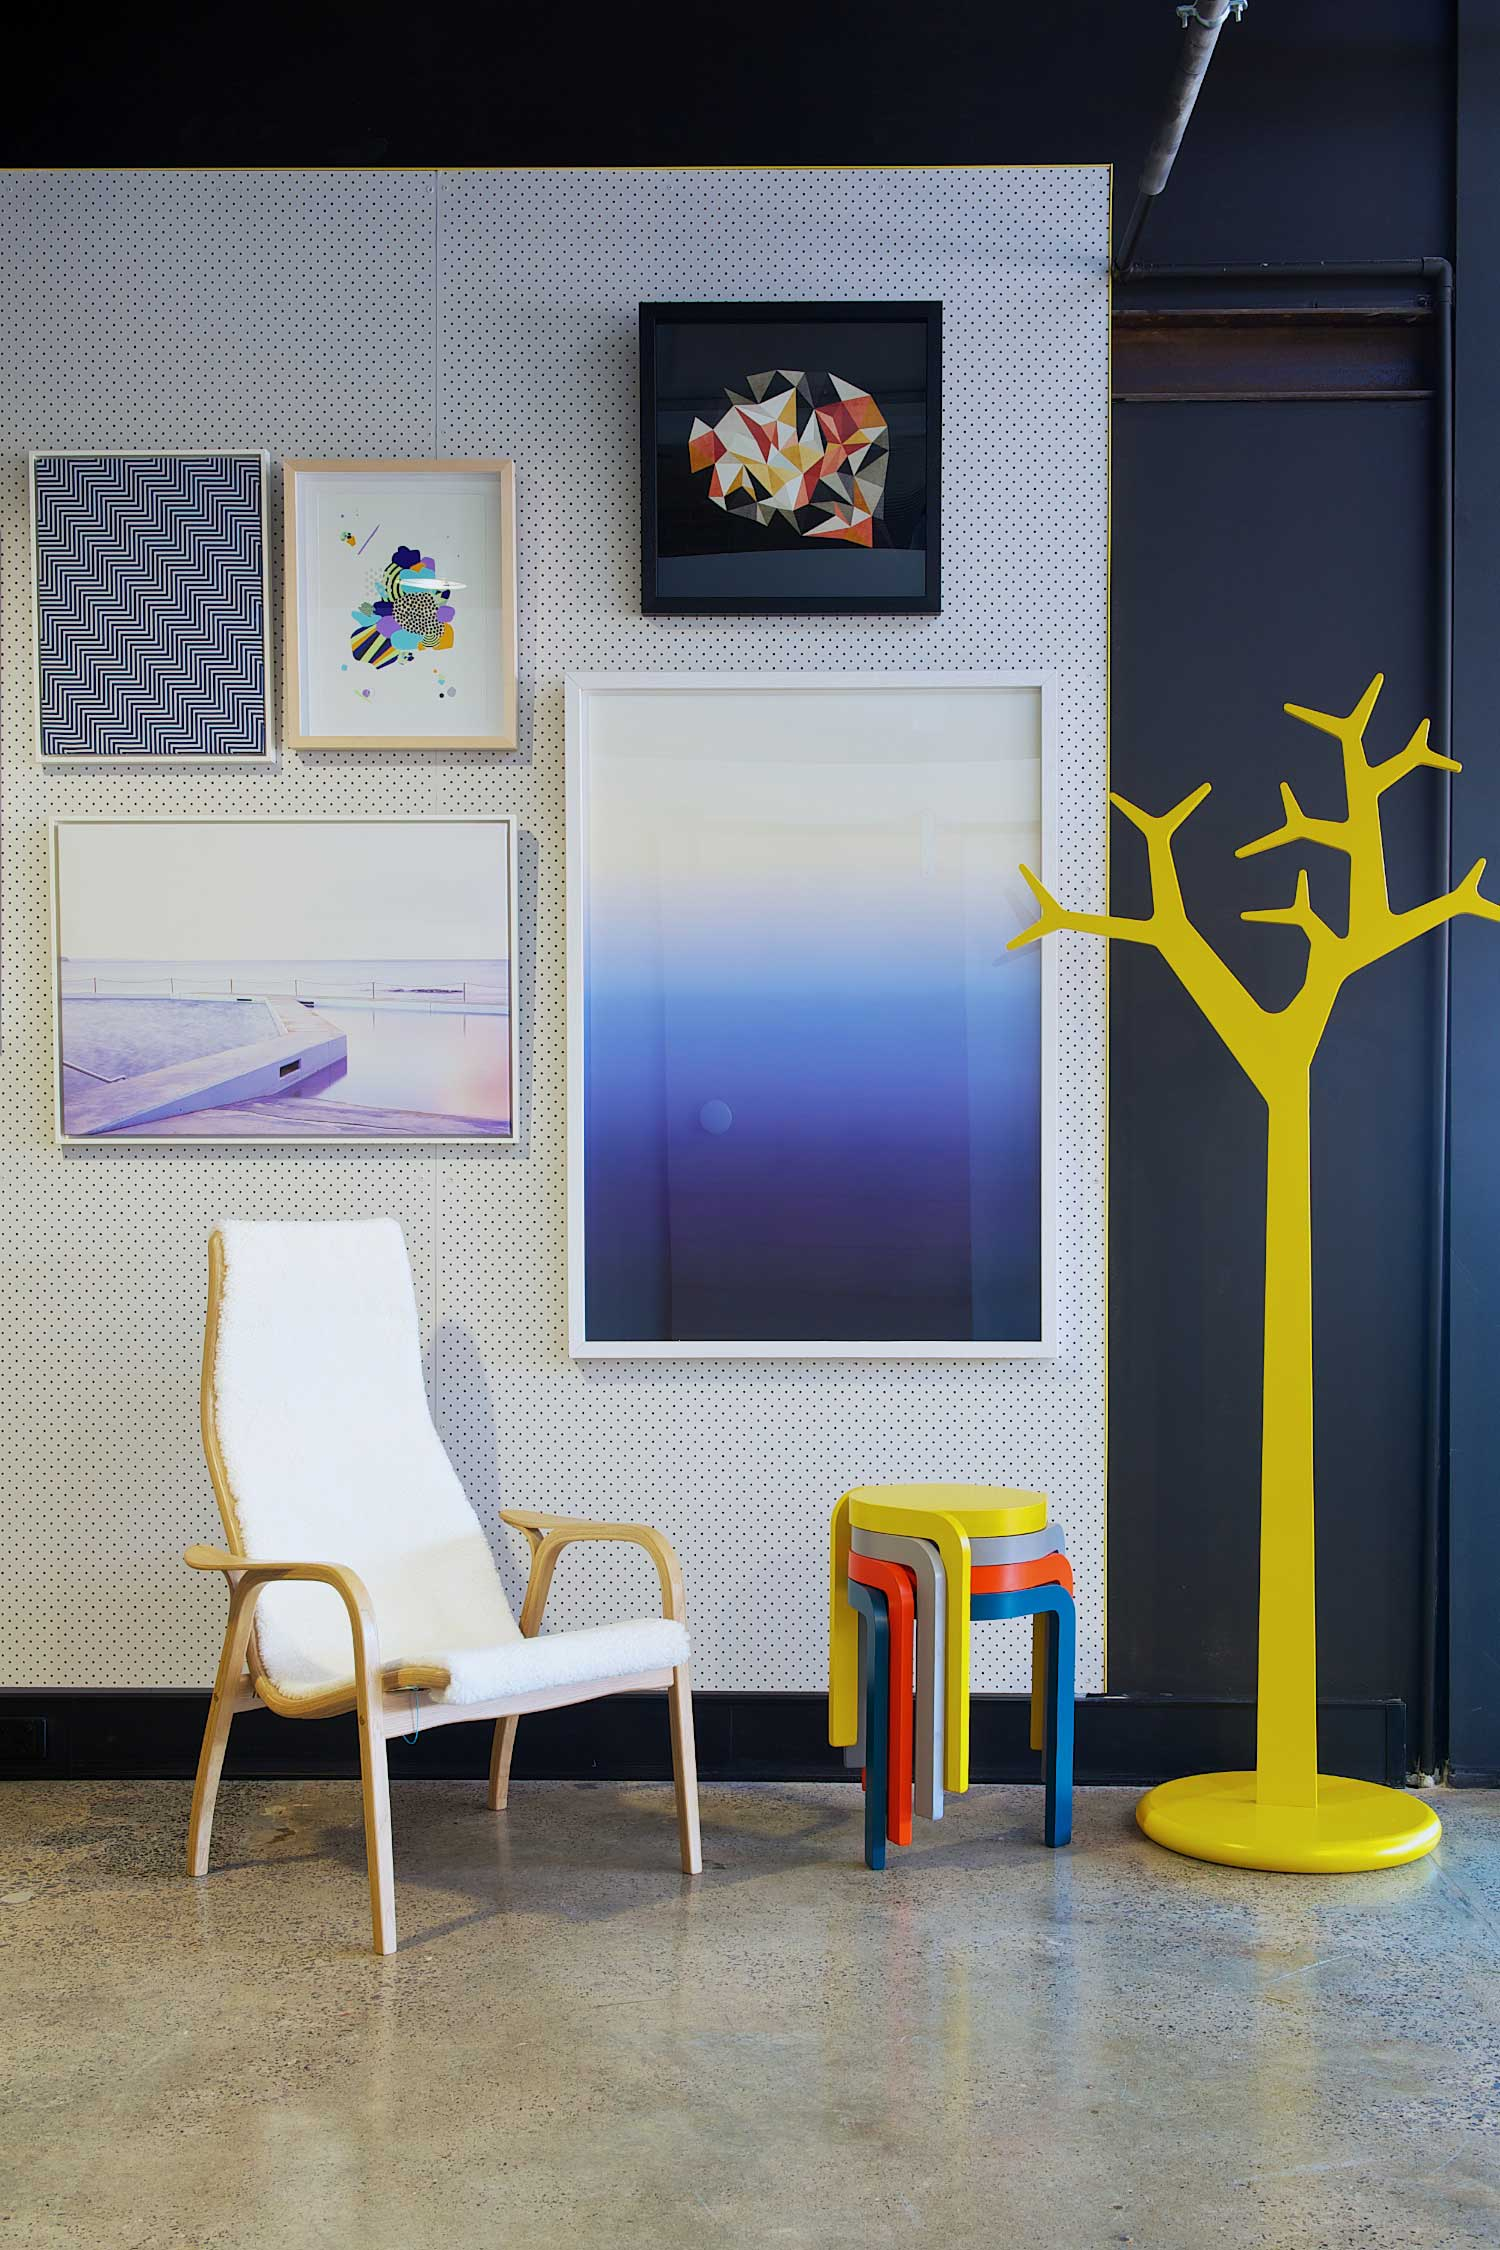 Fred International Sydney Showroom by Yellowtrace, Swedese Lamino Chair in oak frame and white sheepskin, Swedese Spin stools, Swedese Tree in yellow, artwork by I Need Nice Things.